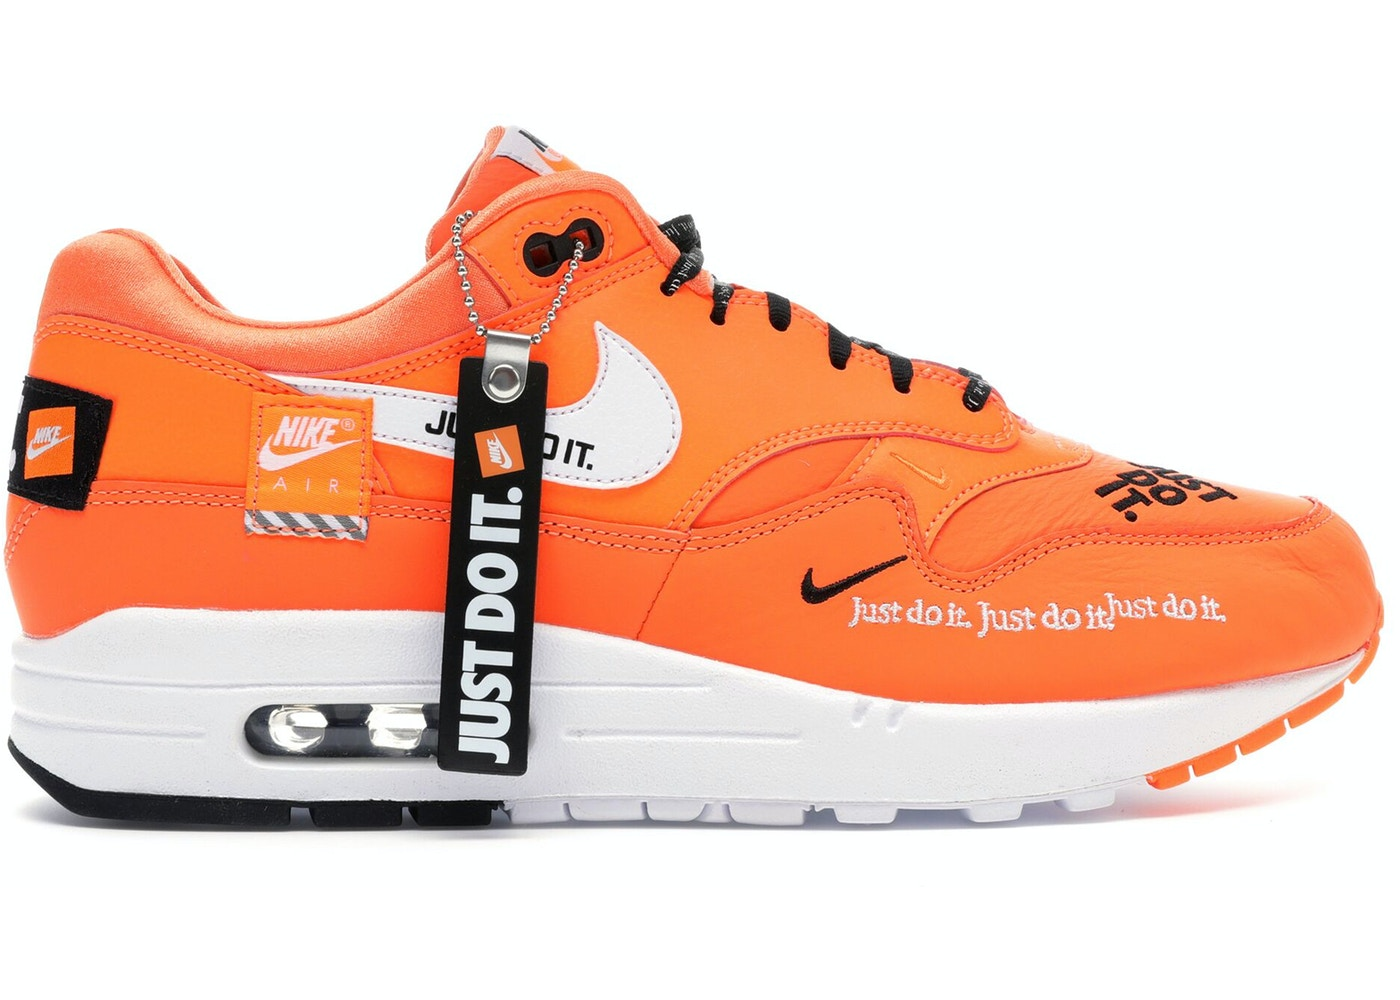 watch 335c2 61348 Air Max 1 Just Do It Orange (W) - 917691-800